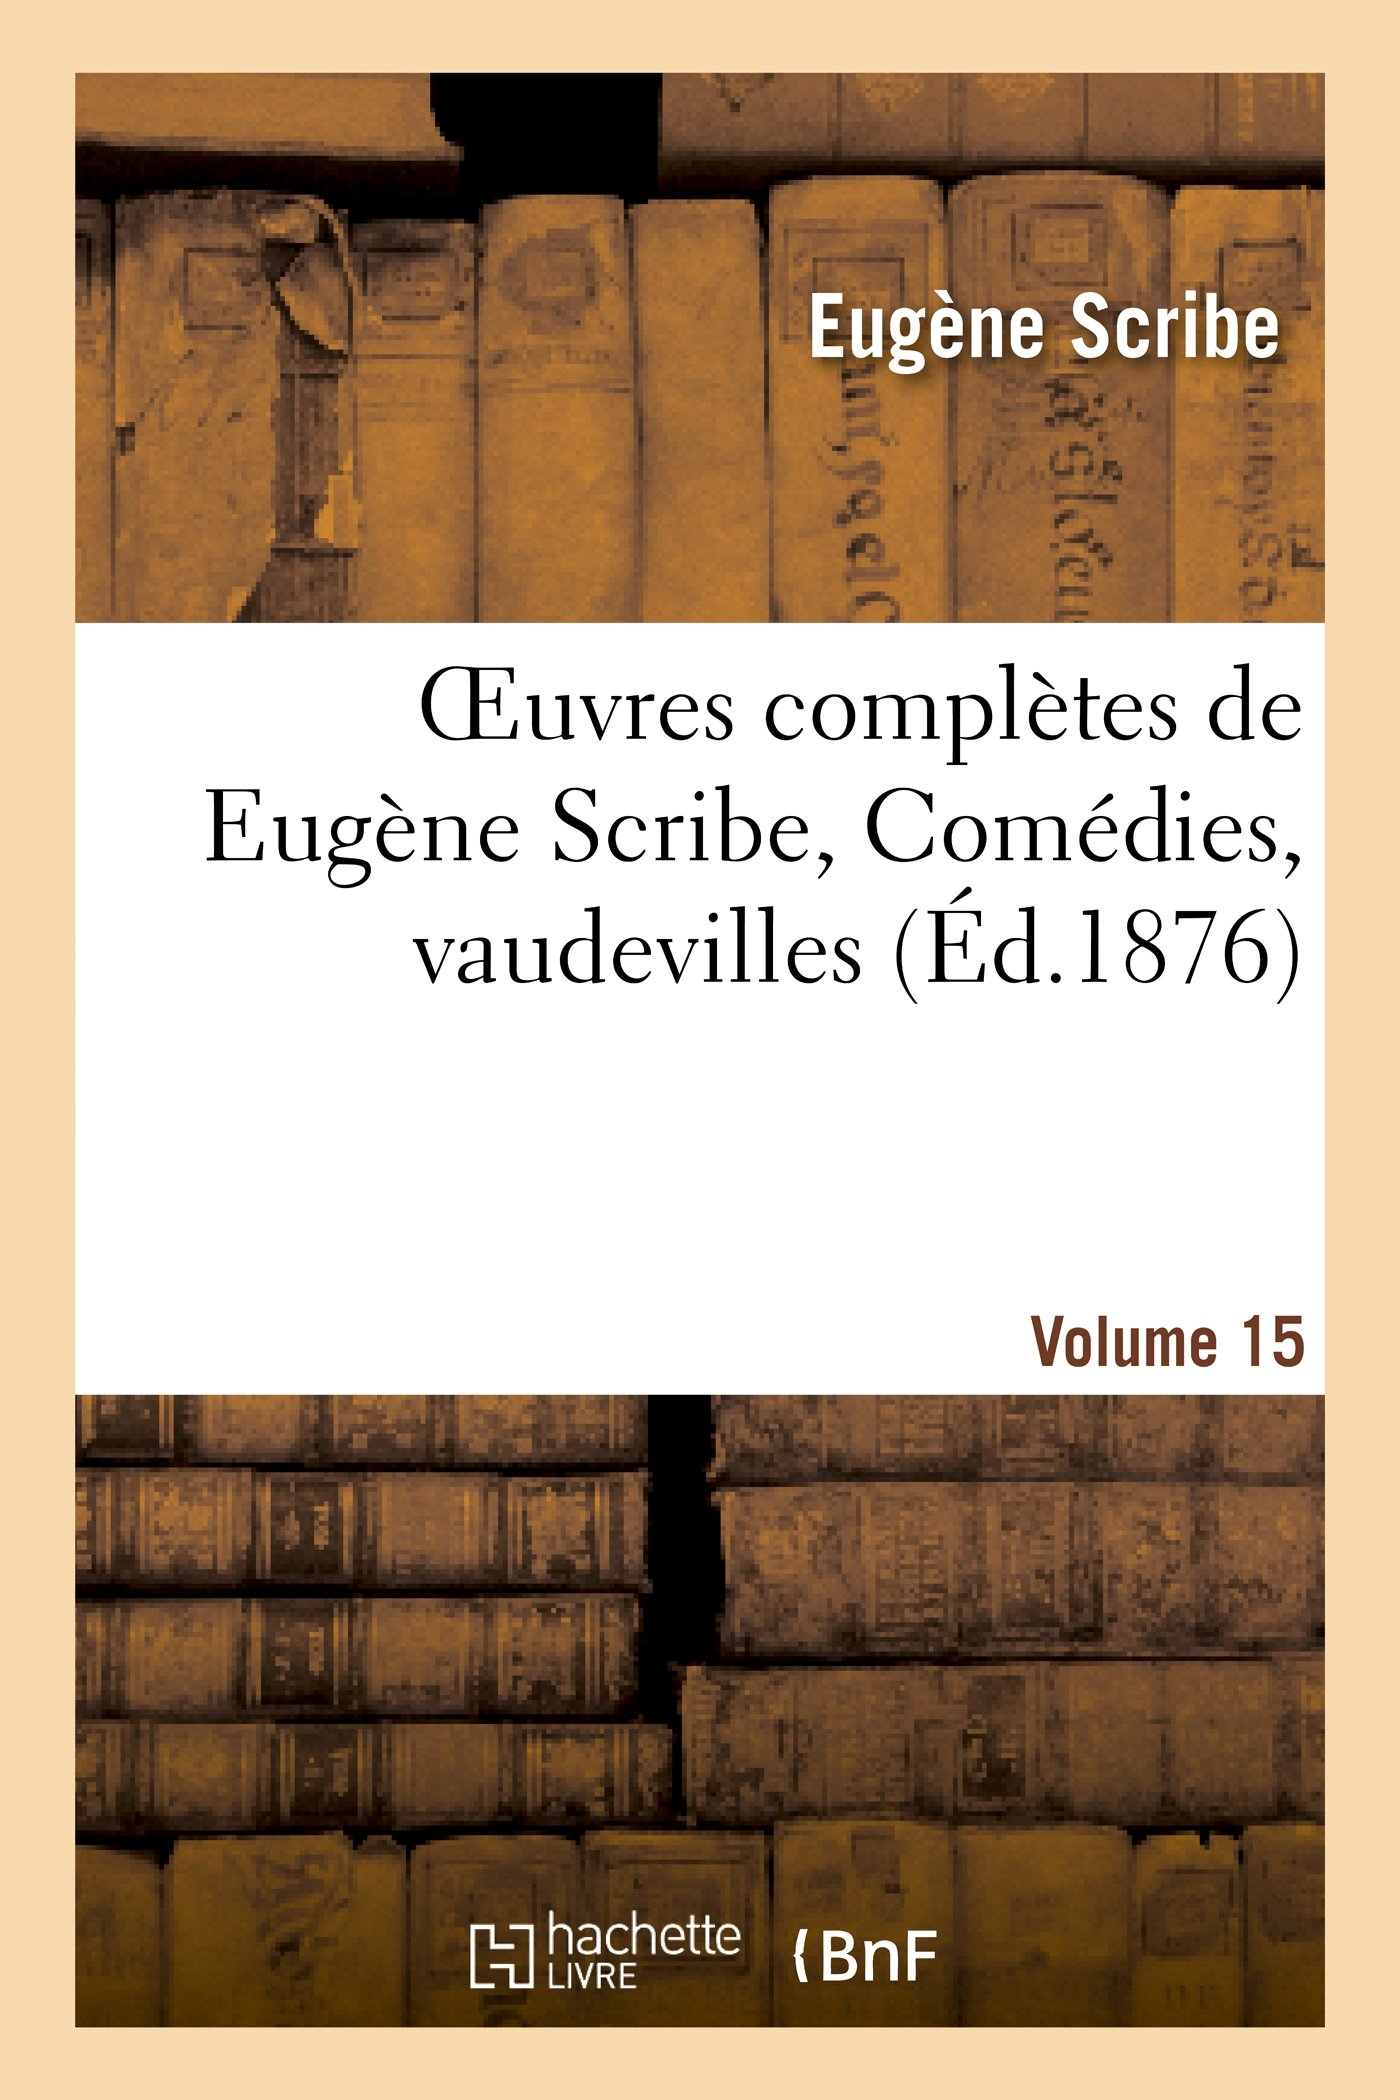 Oeuvres Completes de Eugene Scribe, Comedies, Vaudevilles. Ser. 2, Vol. 15 (Litterature) (French Edition)